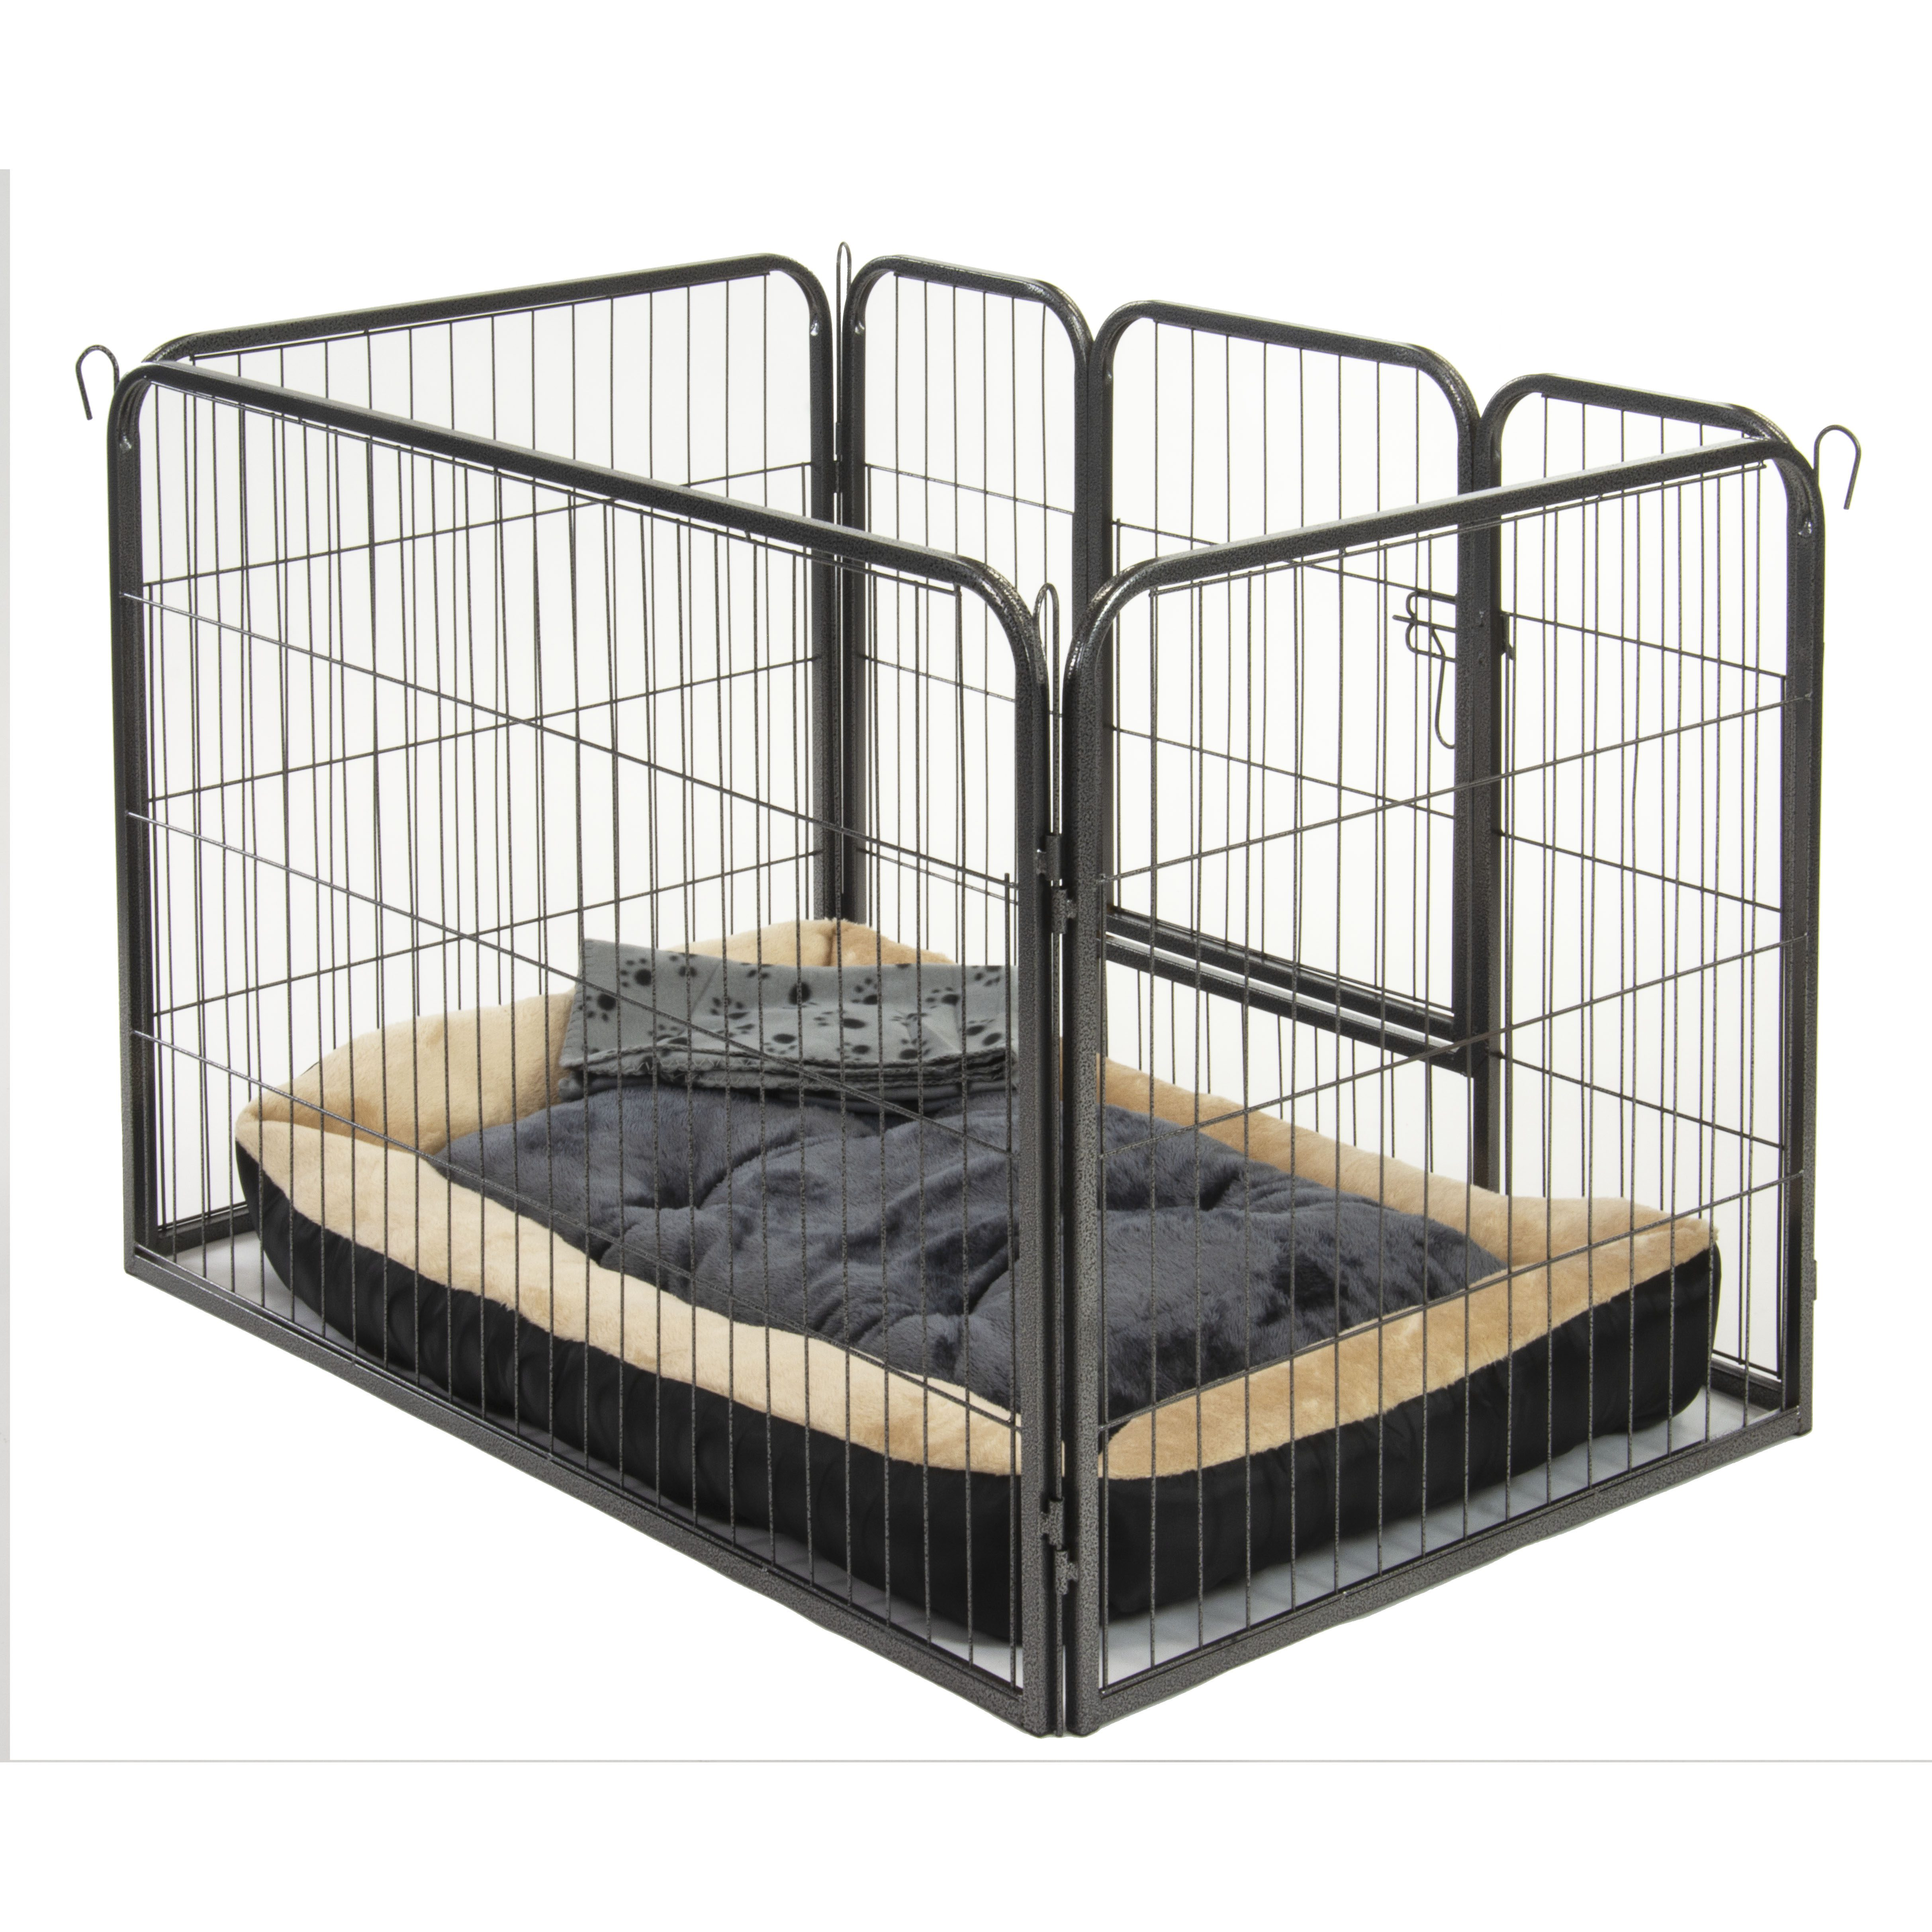 Picture of: Alphapet Large Heavy Duty Pet Dog Puppy Play Pen Whelping Enclosure Including Fitted Fleece Bed And Sleep Blanket Alphapet